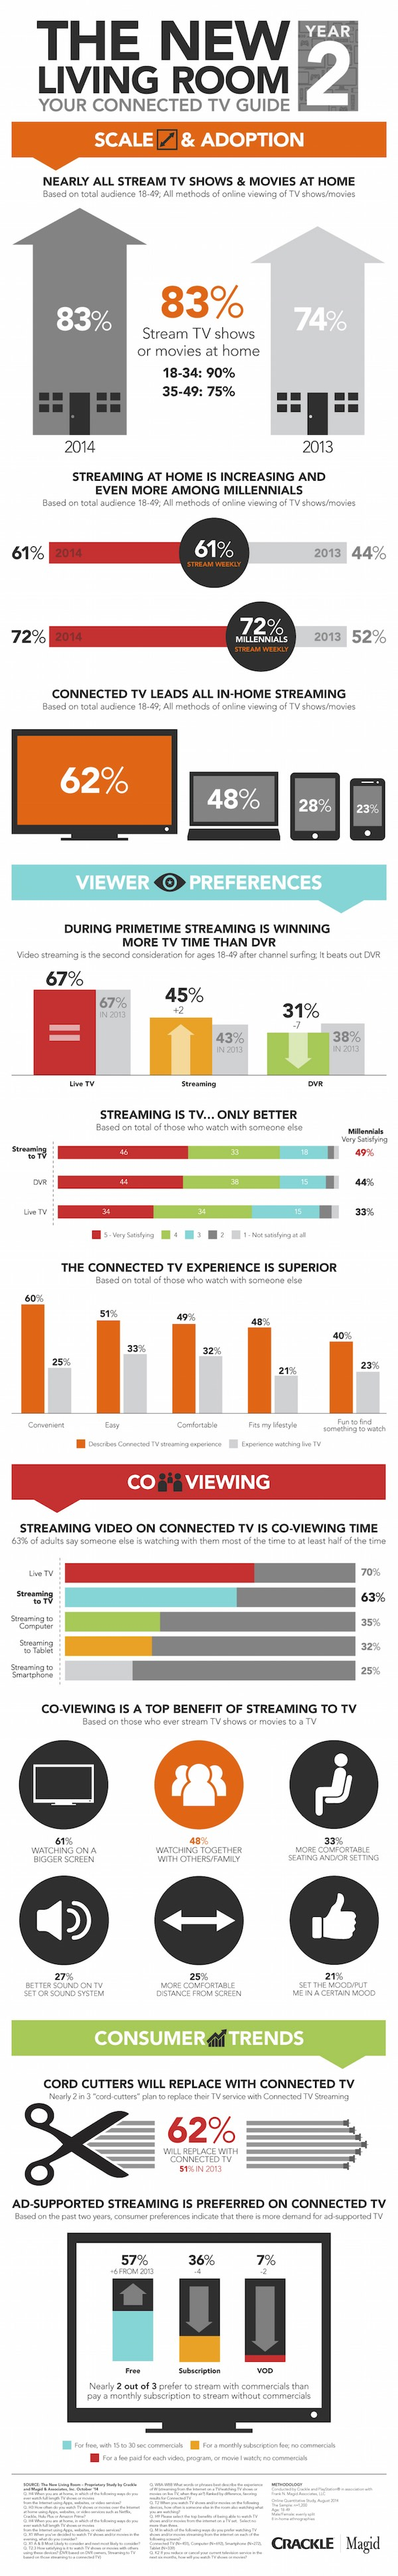 crackle-streaming-infographic